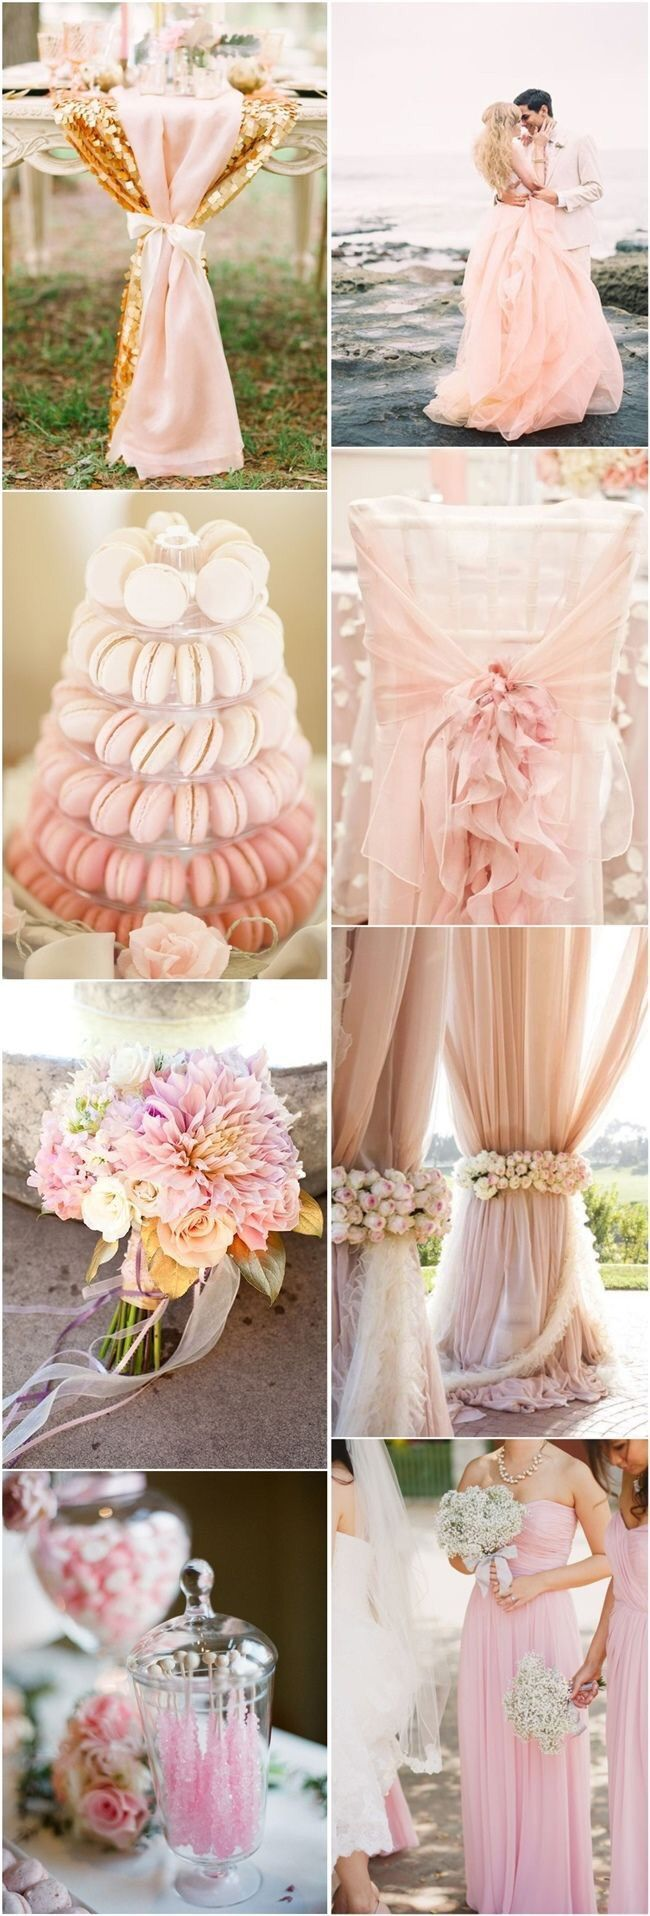 Best 25 blush pink weddings ideas on pinterest pink for Wedding color scheme ideas